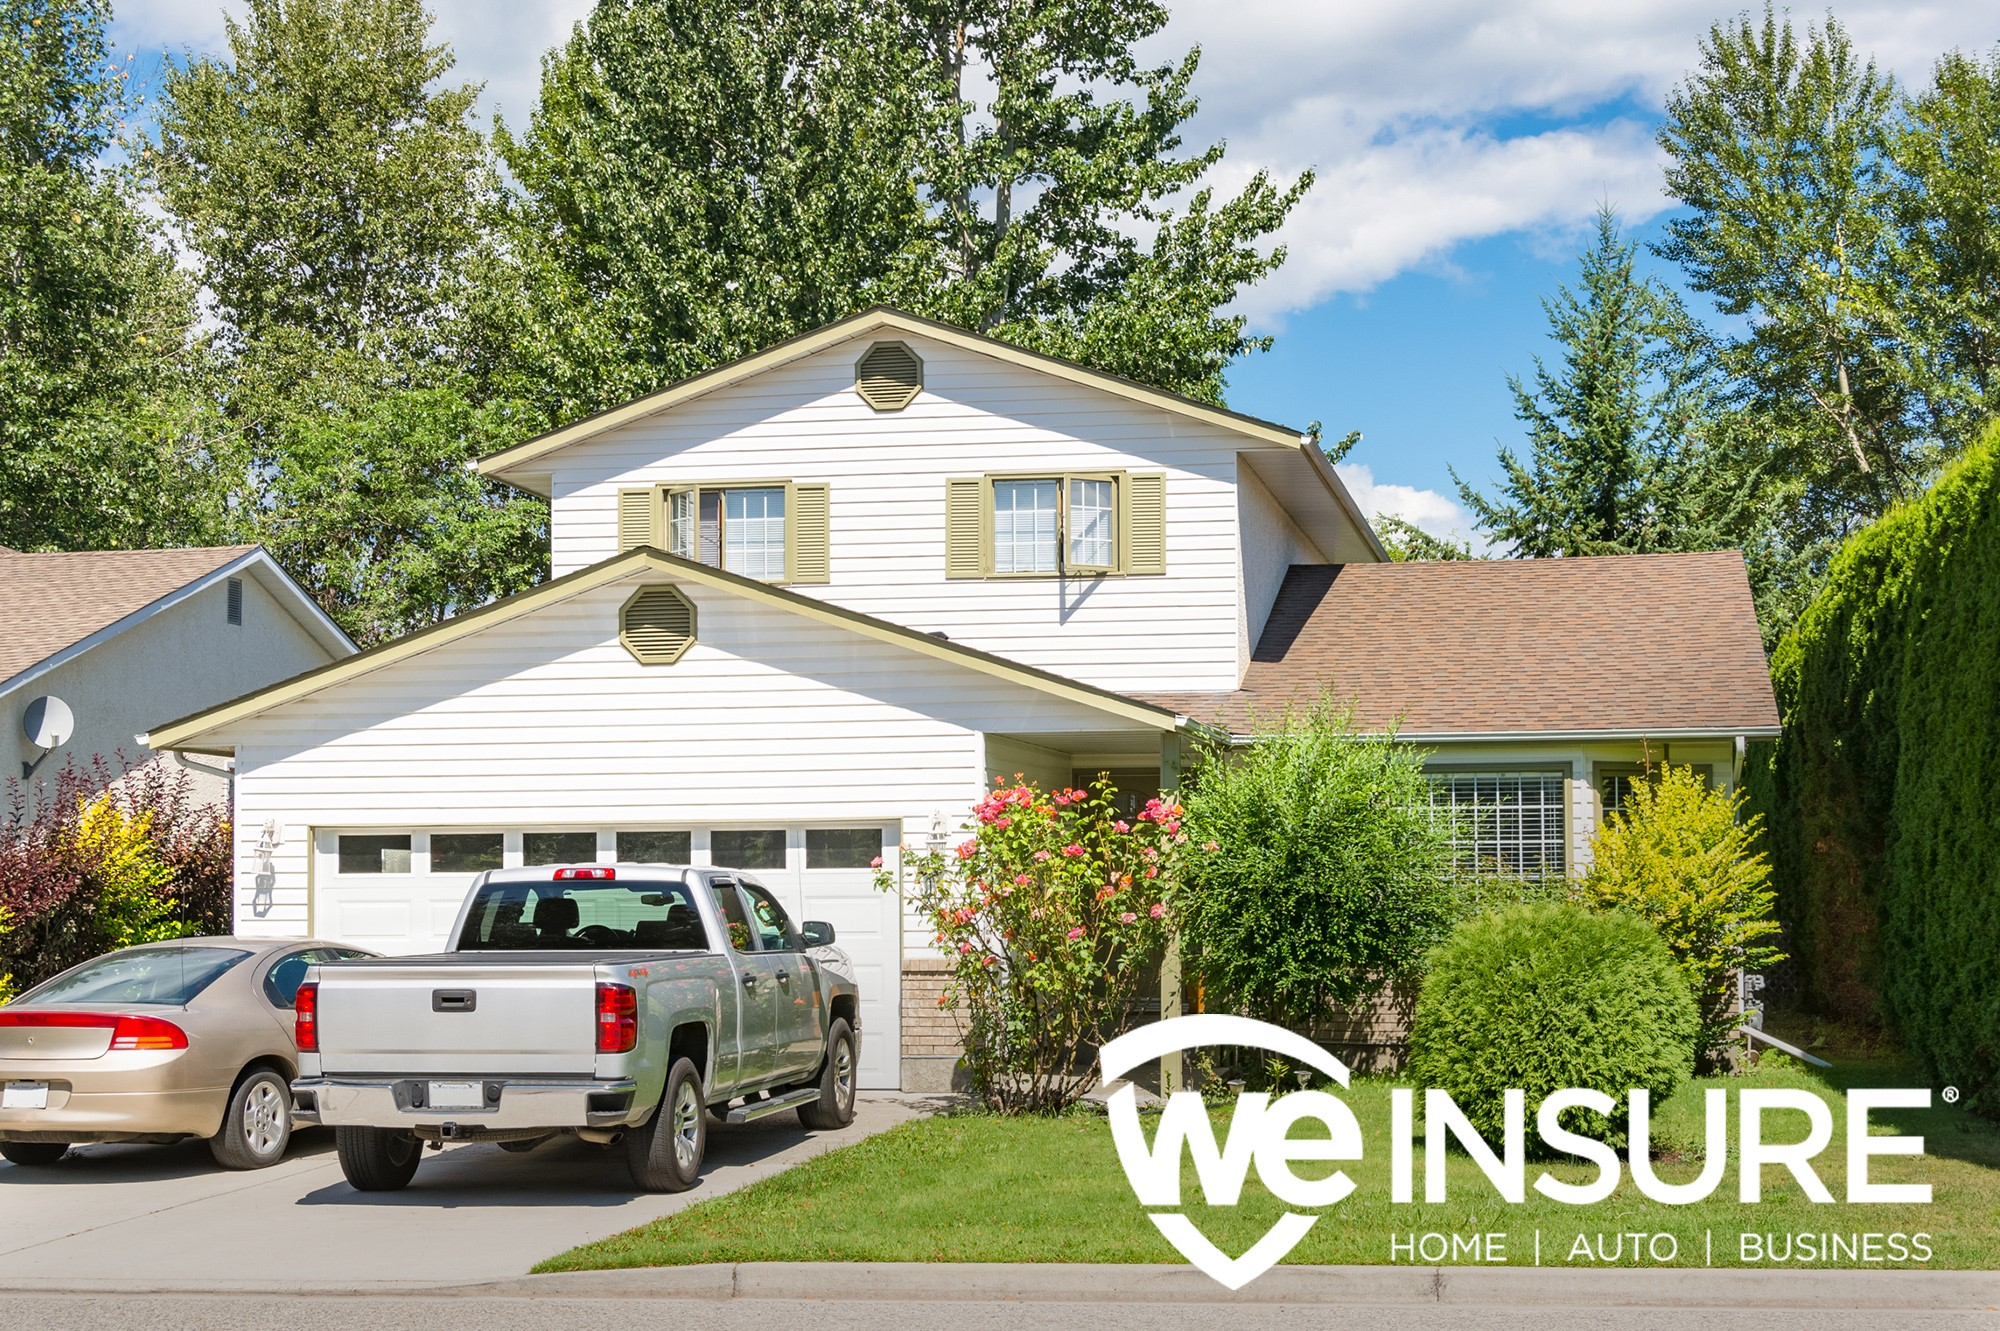 7 Ways to Save Money on Homeowners Insurance Image